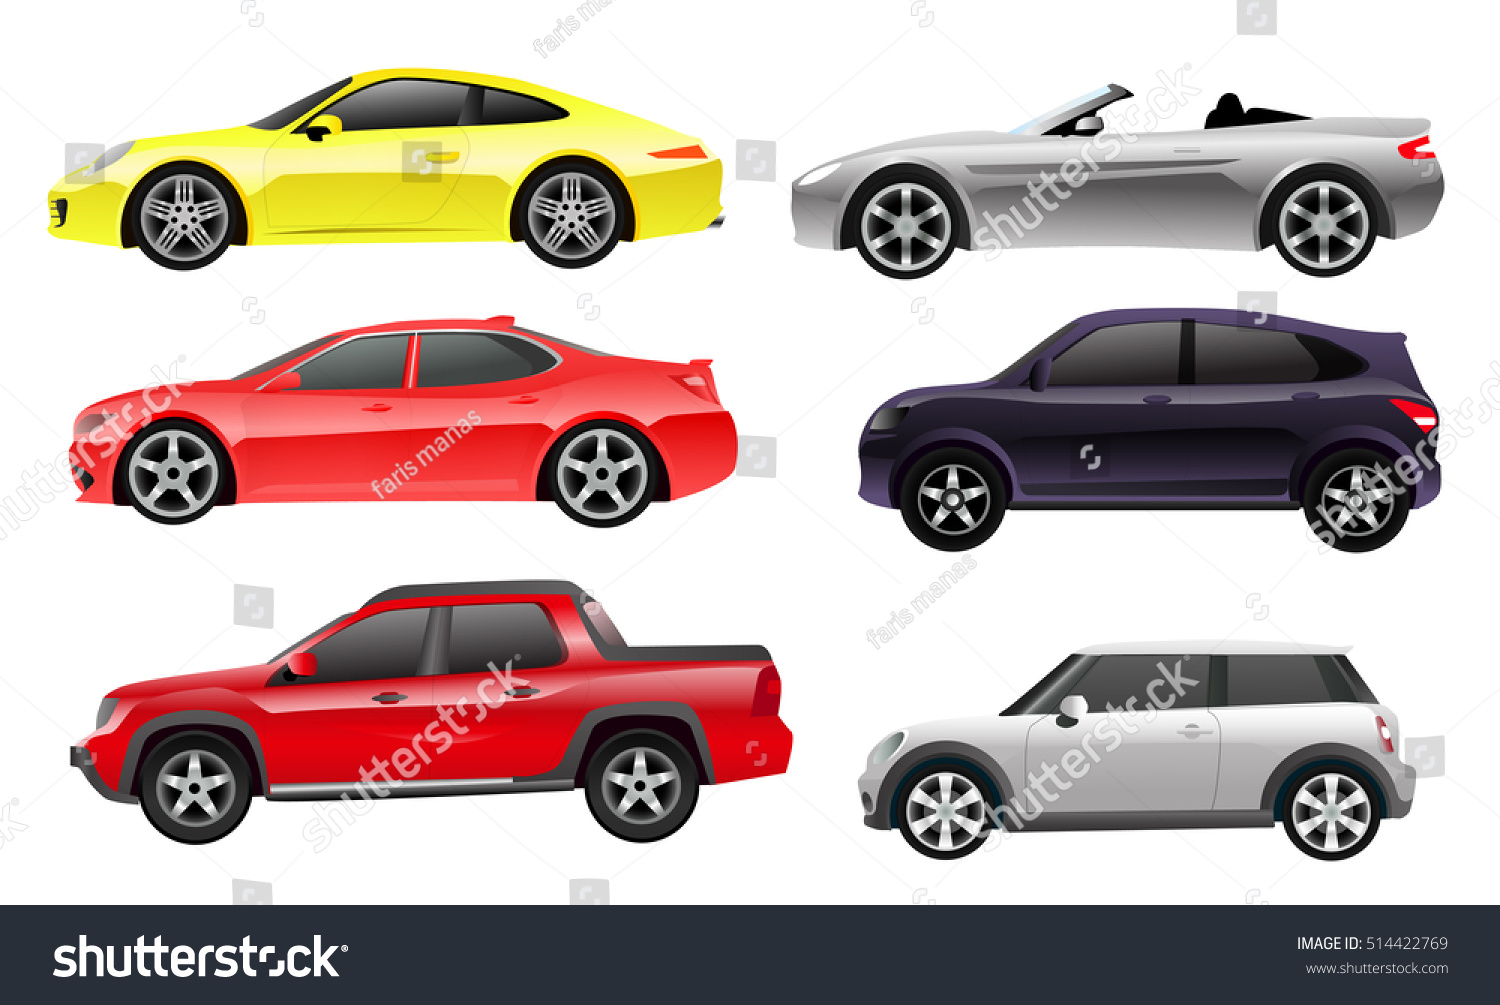 cars side view colored illustrations stock vector 514422769 shutterstock. Black Bedroom Furniture Sets. Home Design Ideas